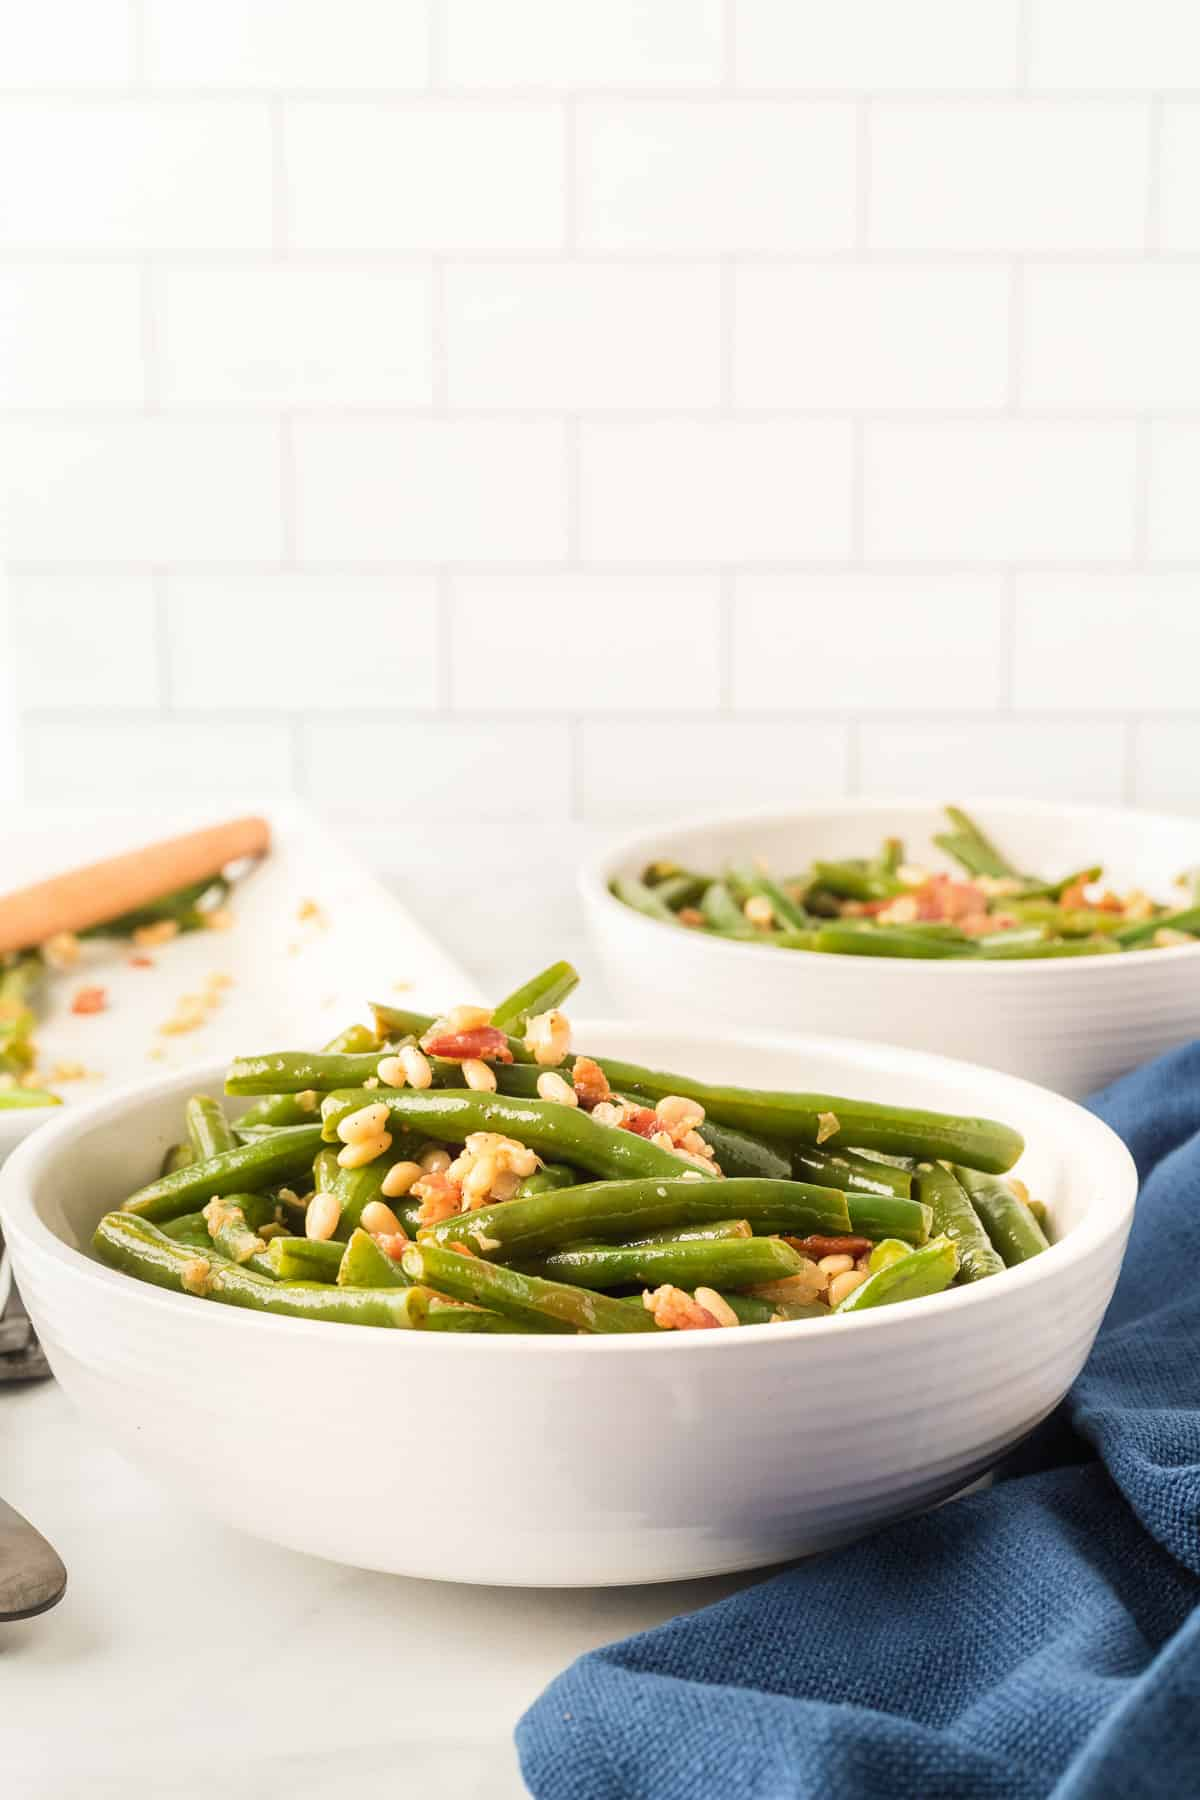 a white bowl next to a blue napkin filled with green beans, bacon, and pine nuts.